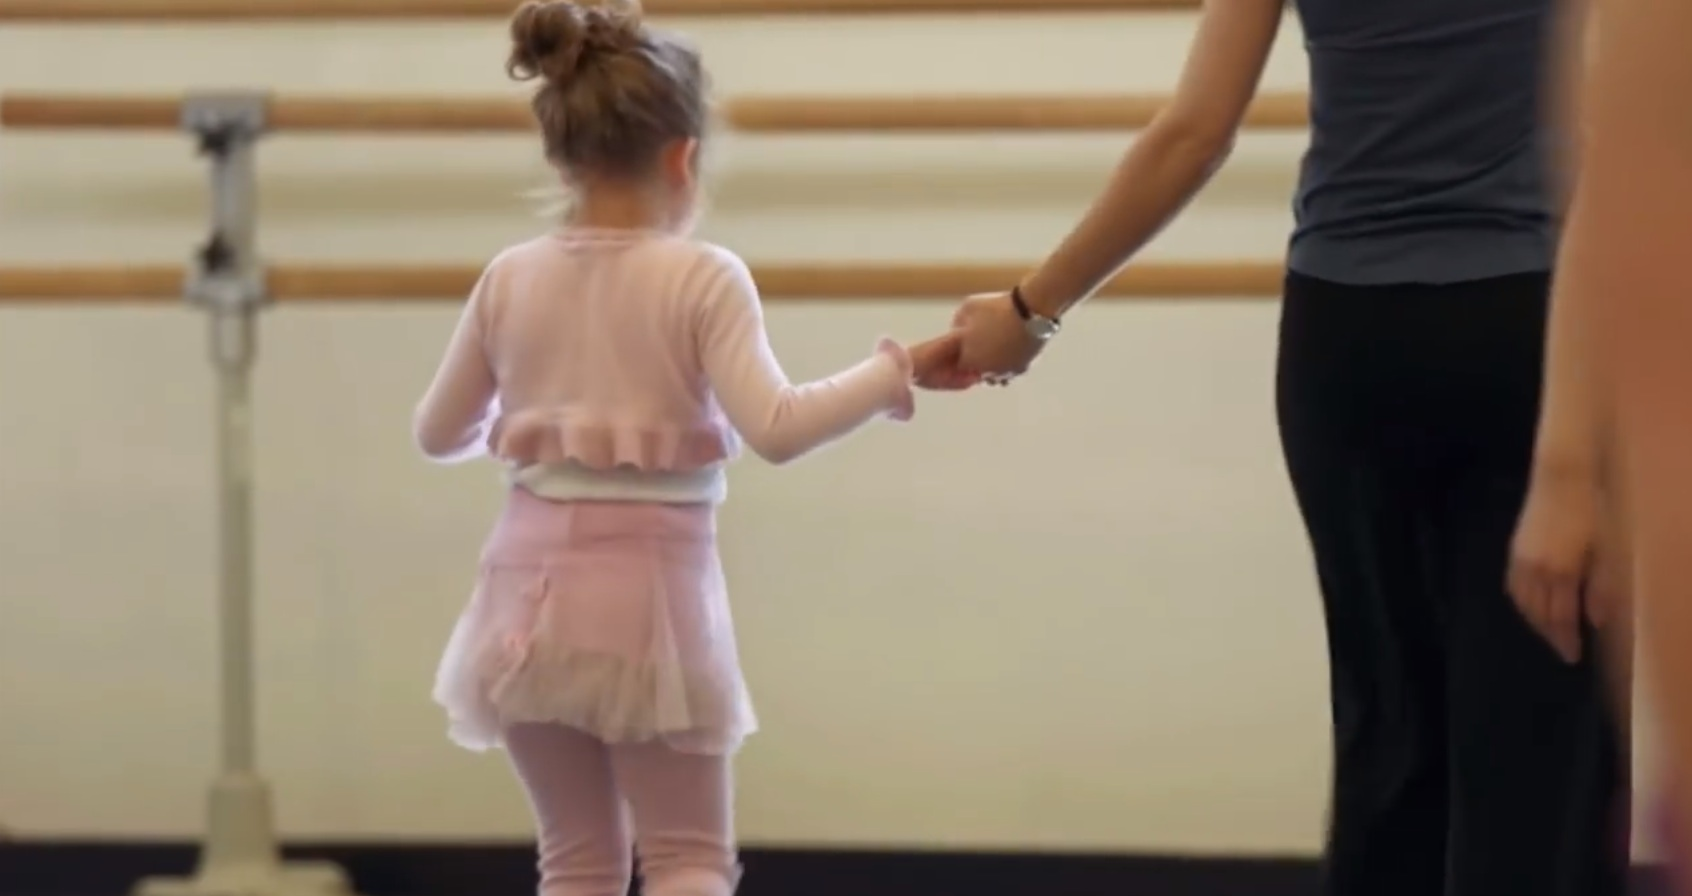 This mom's email paved the way to a dream ballet class for differently-abled kids